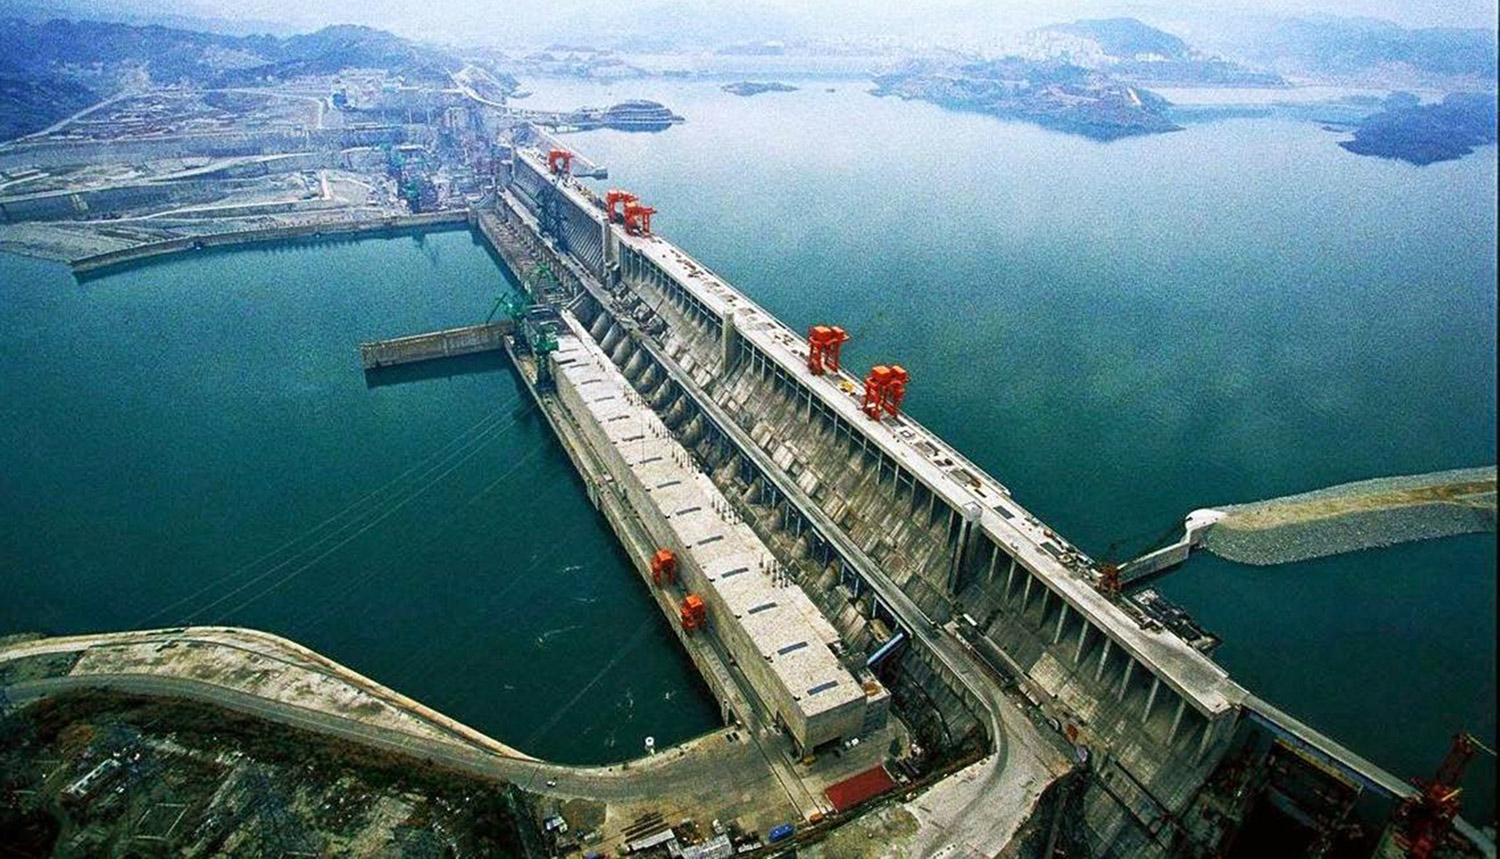 سد سه دره three gorges dam